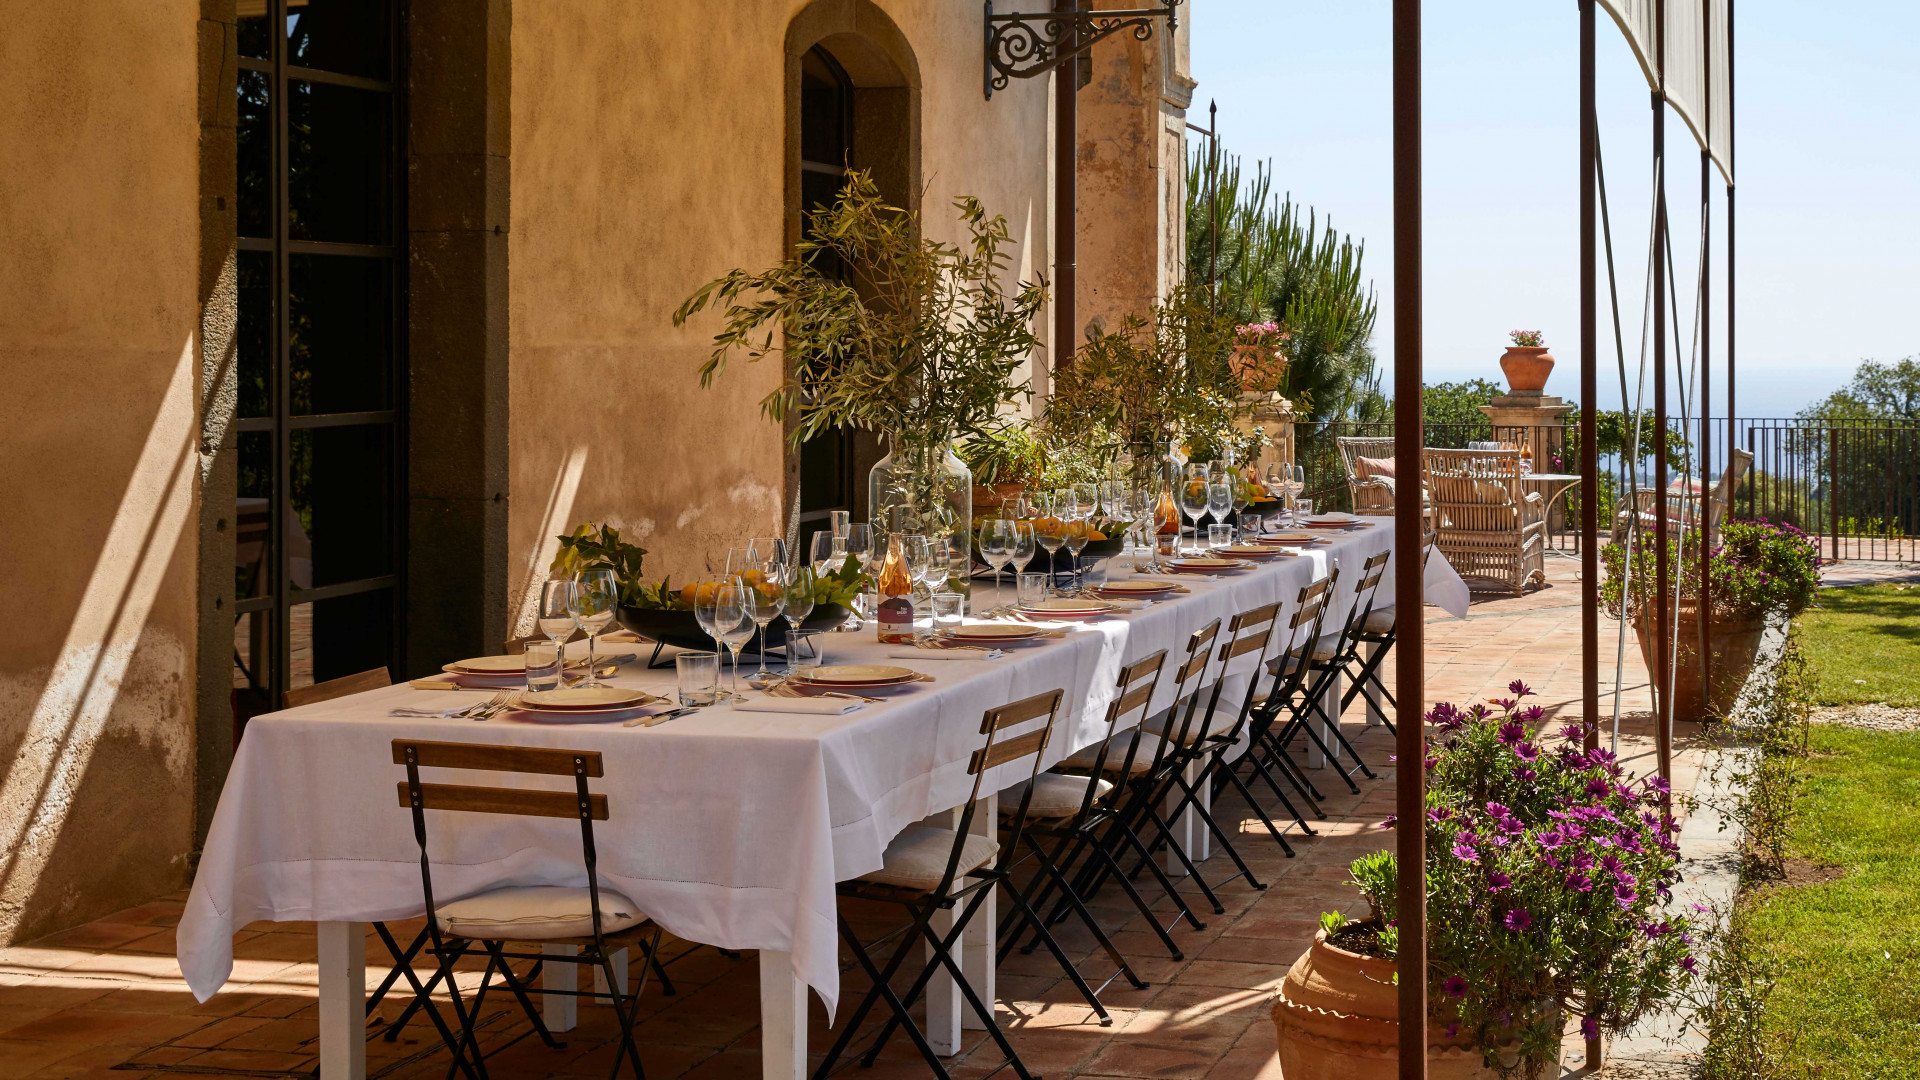 Dining al fresco is always an option at Rocca delle Tre Contrade